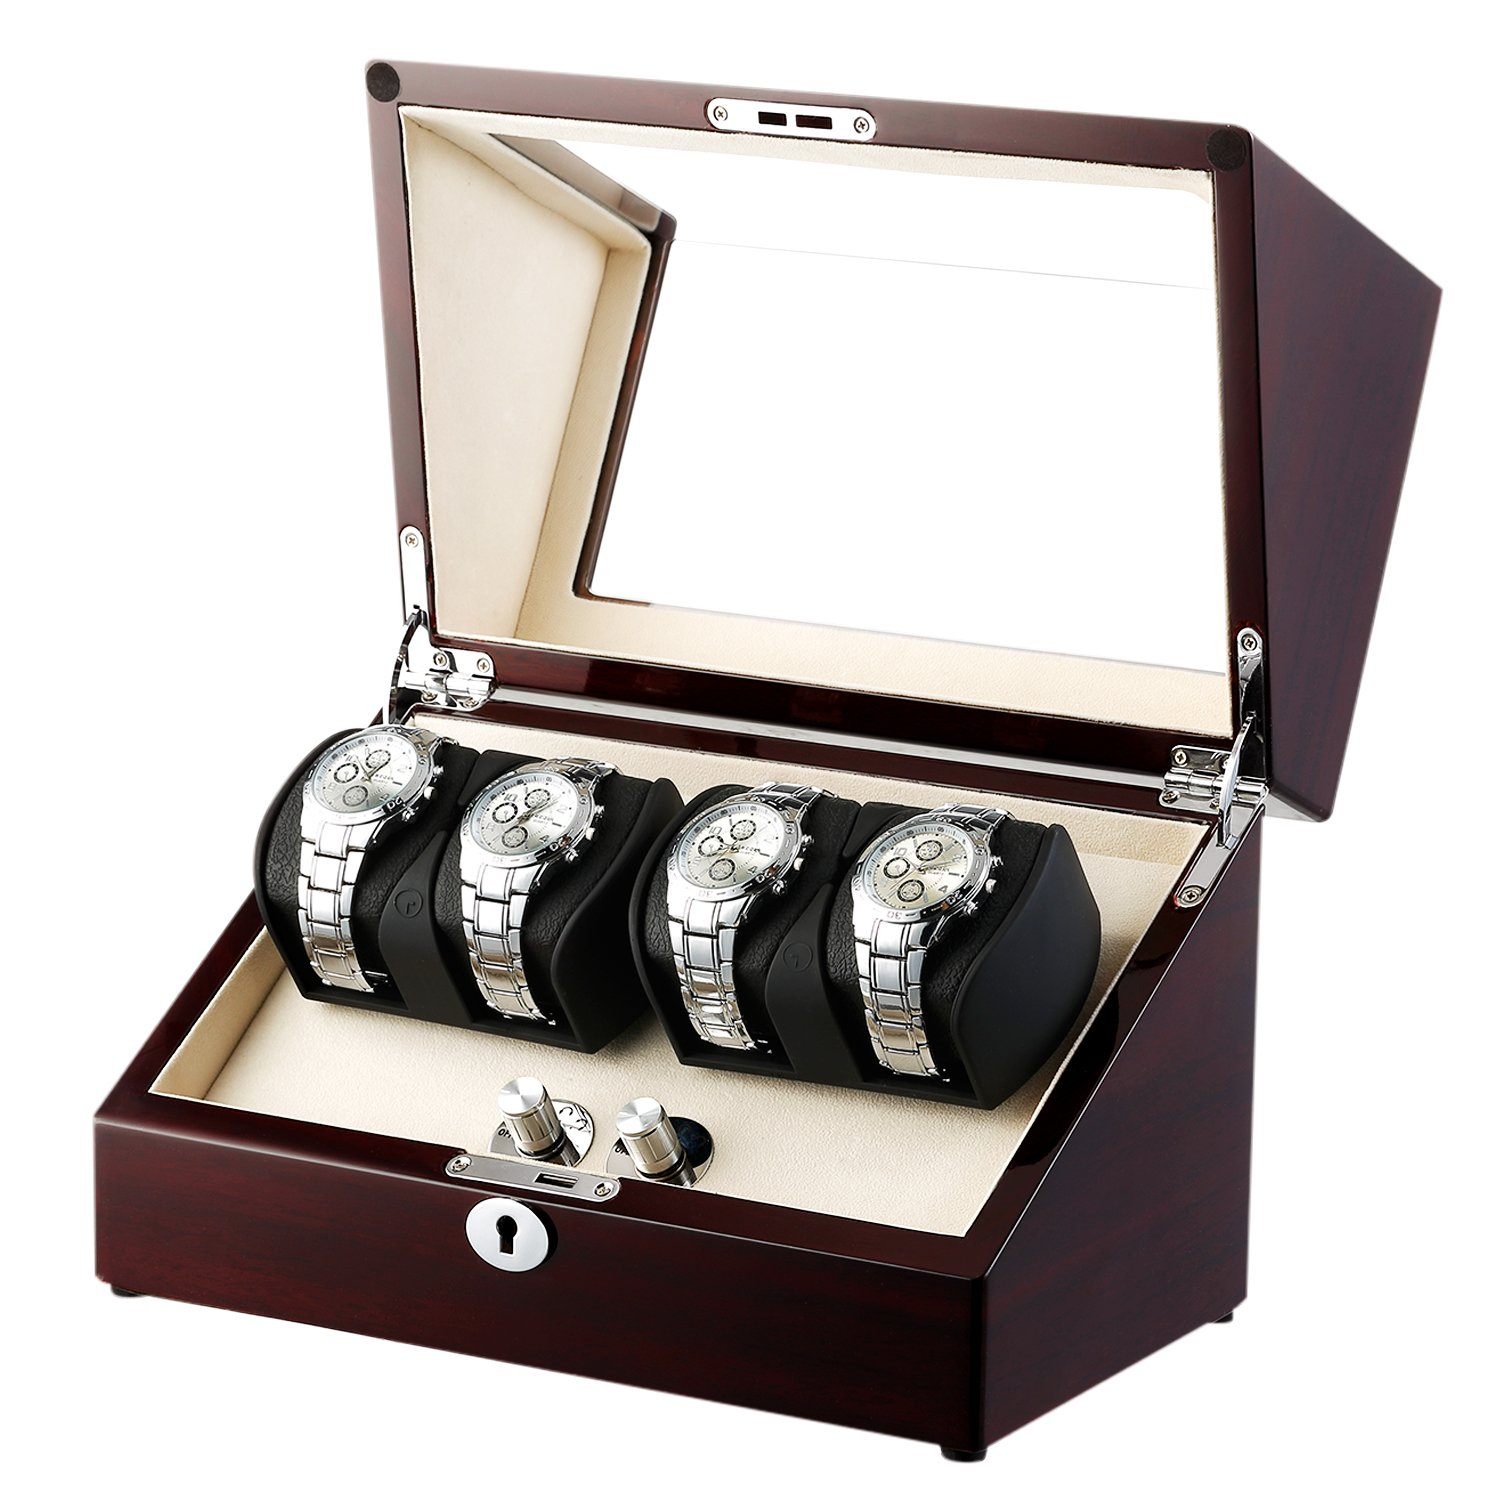 OLYMBROS Wooden Quad Automatic Watch Winder Storage Boxes for 4 Watches with LED Light